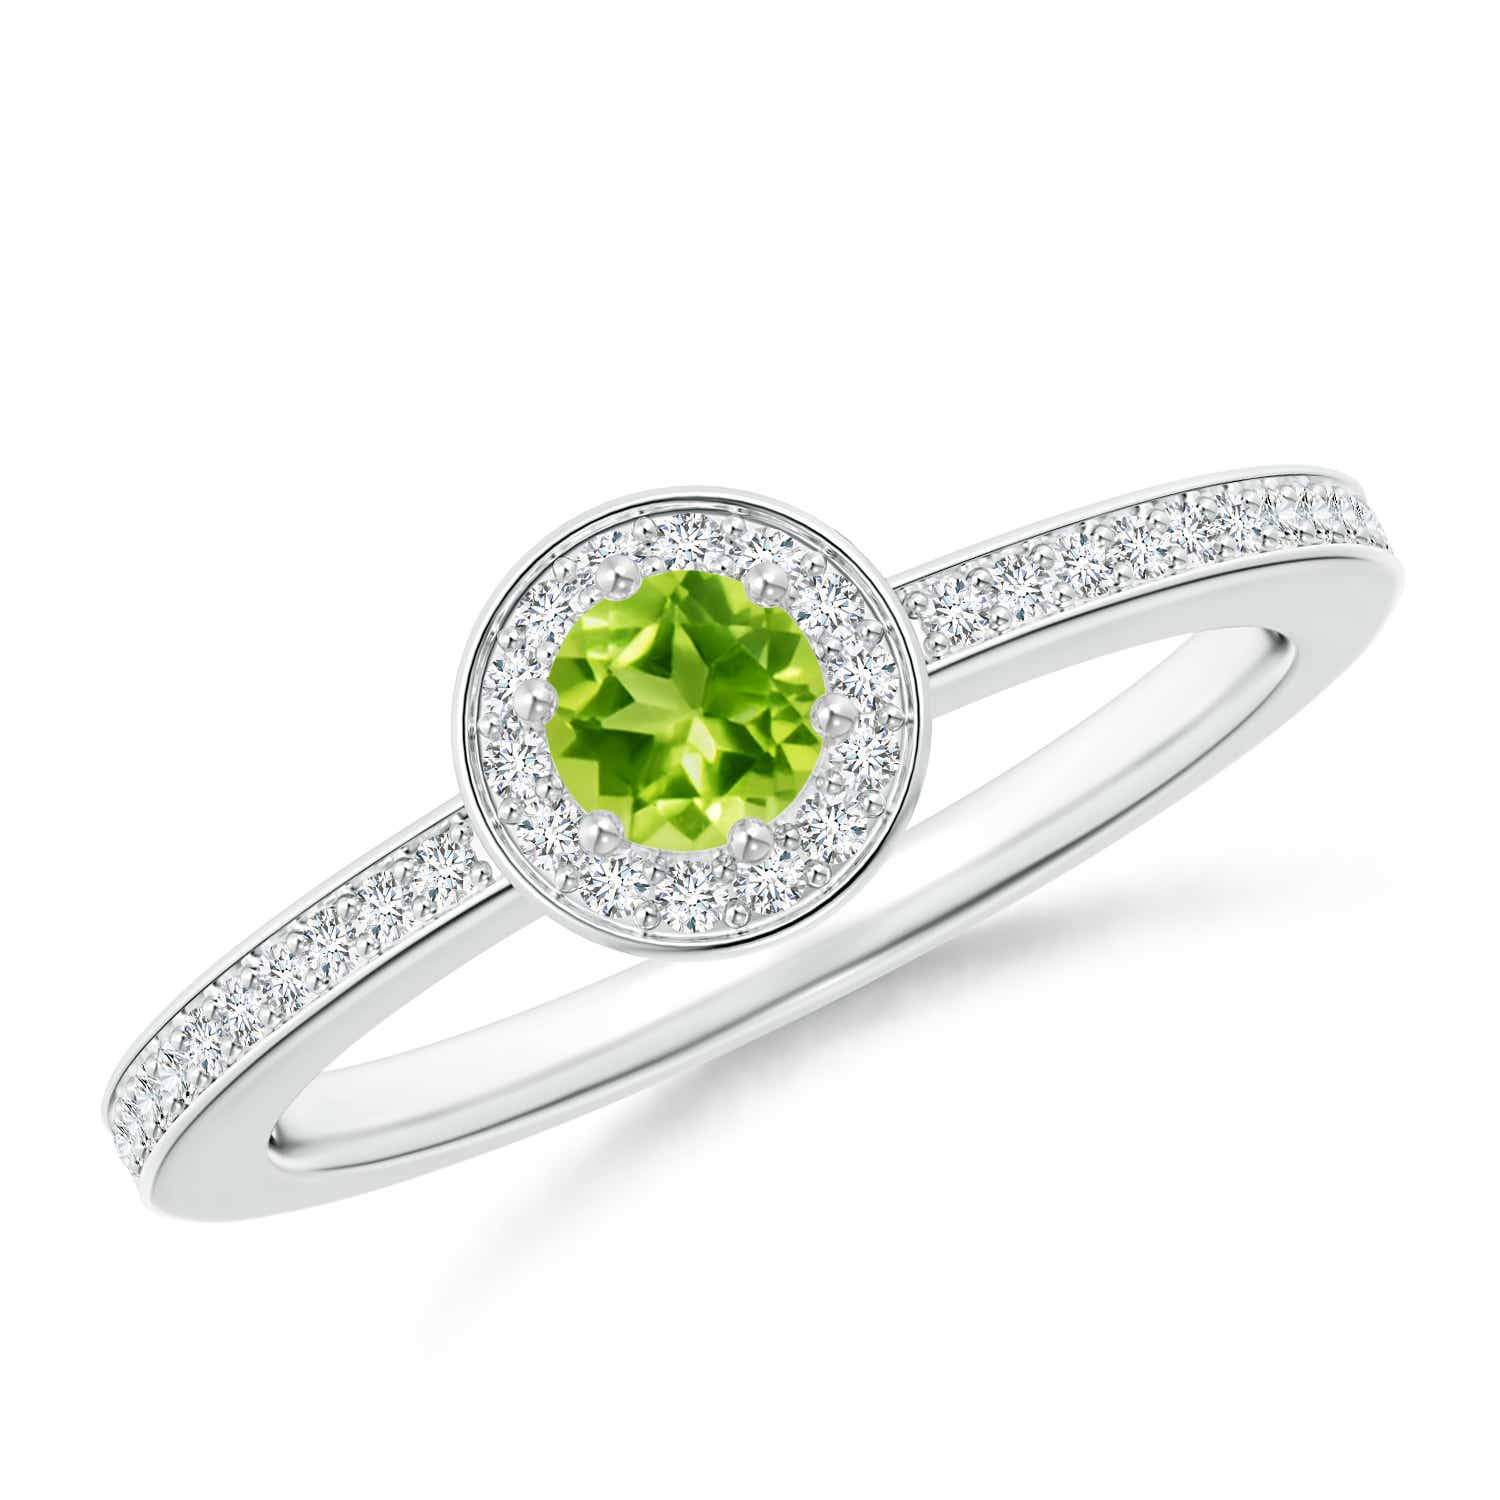 august peridot engagement ring gemstone cut cushion birthstone sterling silver rings natural media